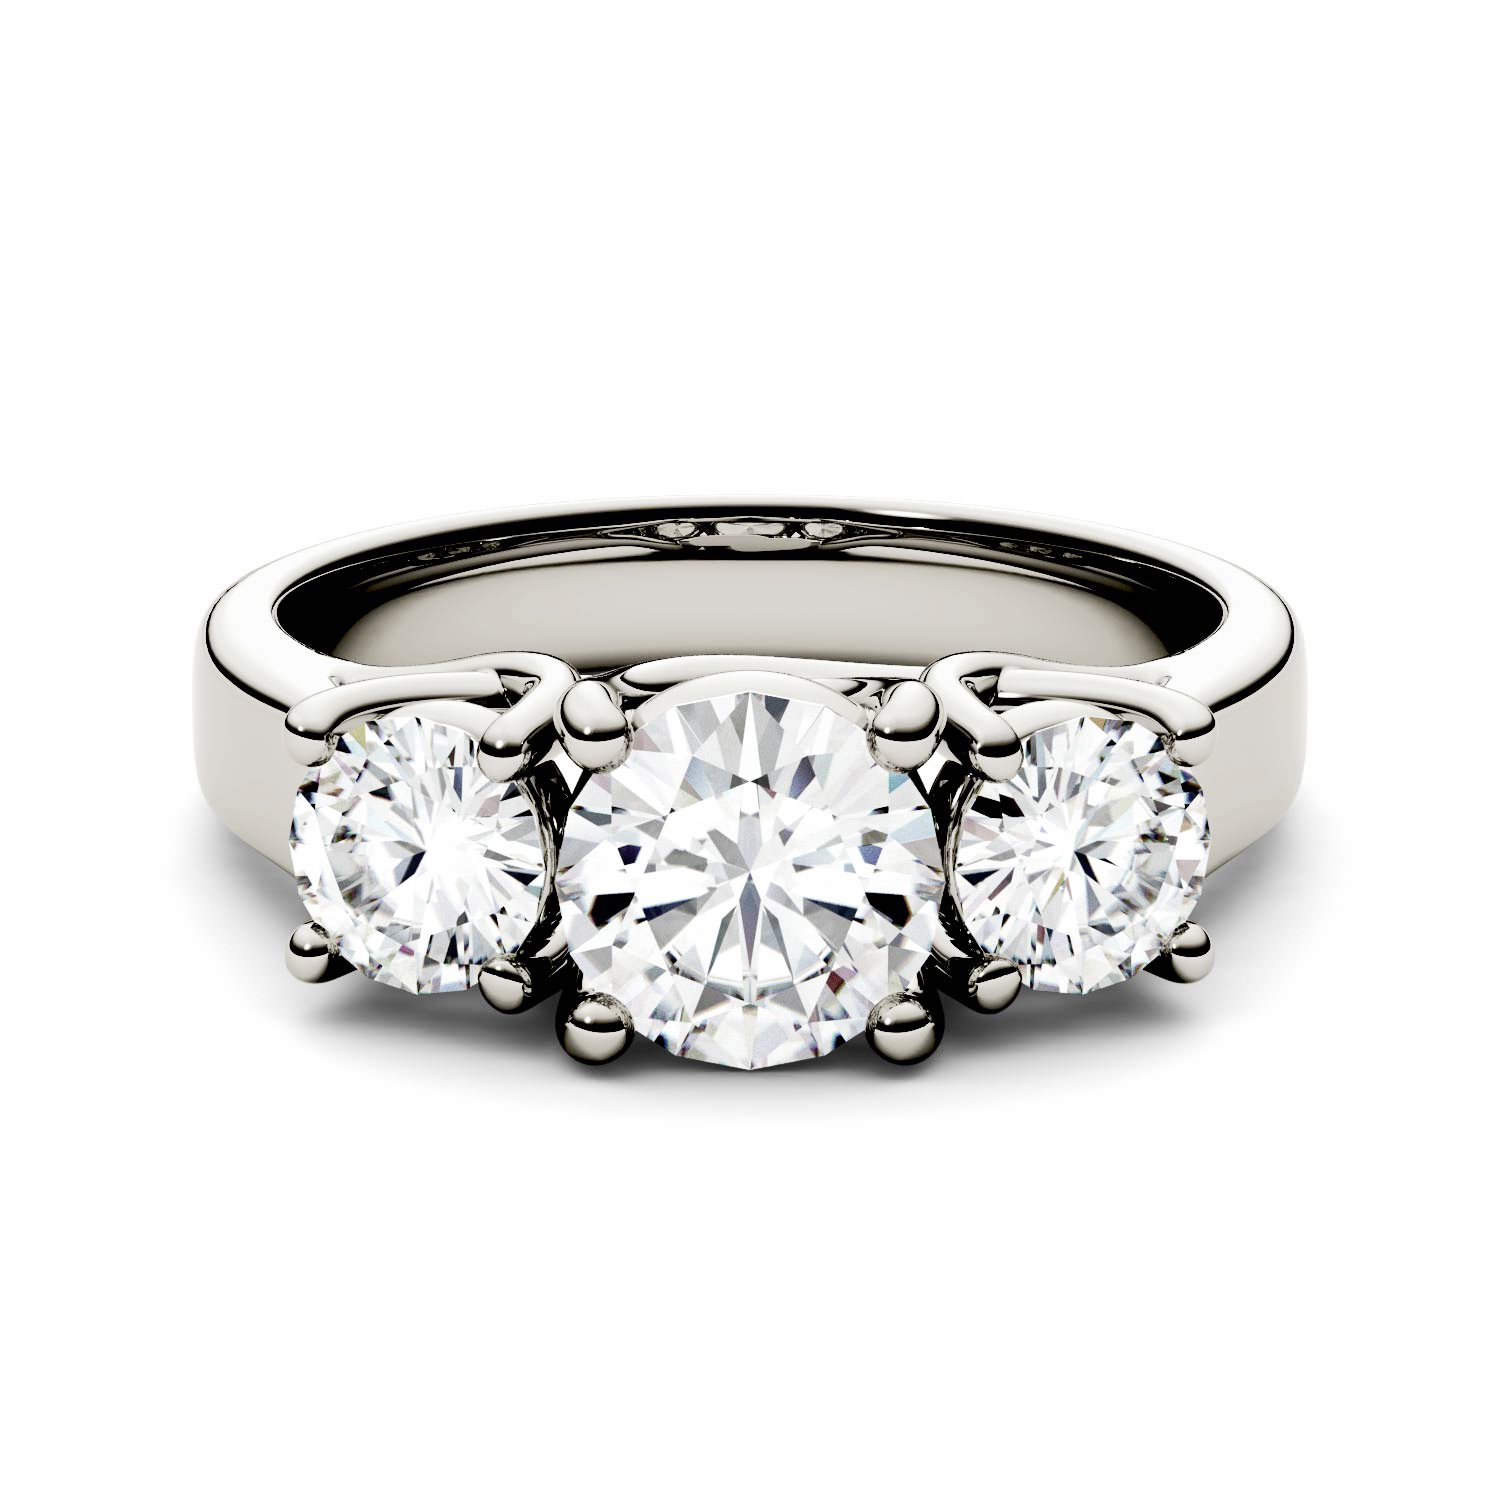 Forever One Round 6.5mm Three Stone Moissanite Ring-size 7, 2.00cttw DEW (D-E-F) By Charles & Colvard